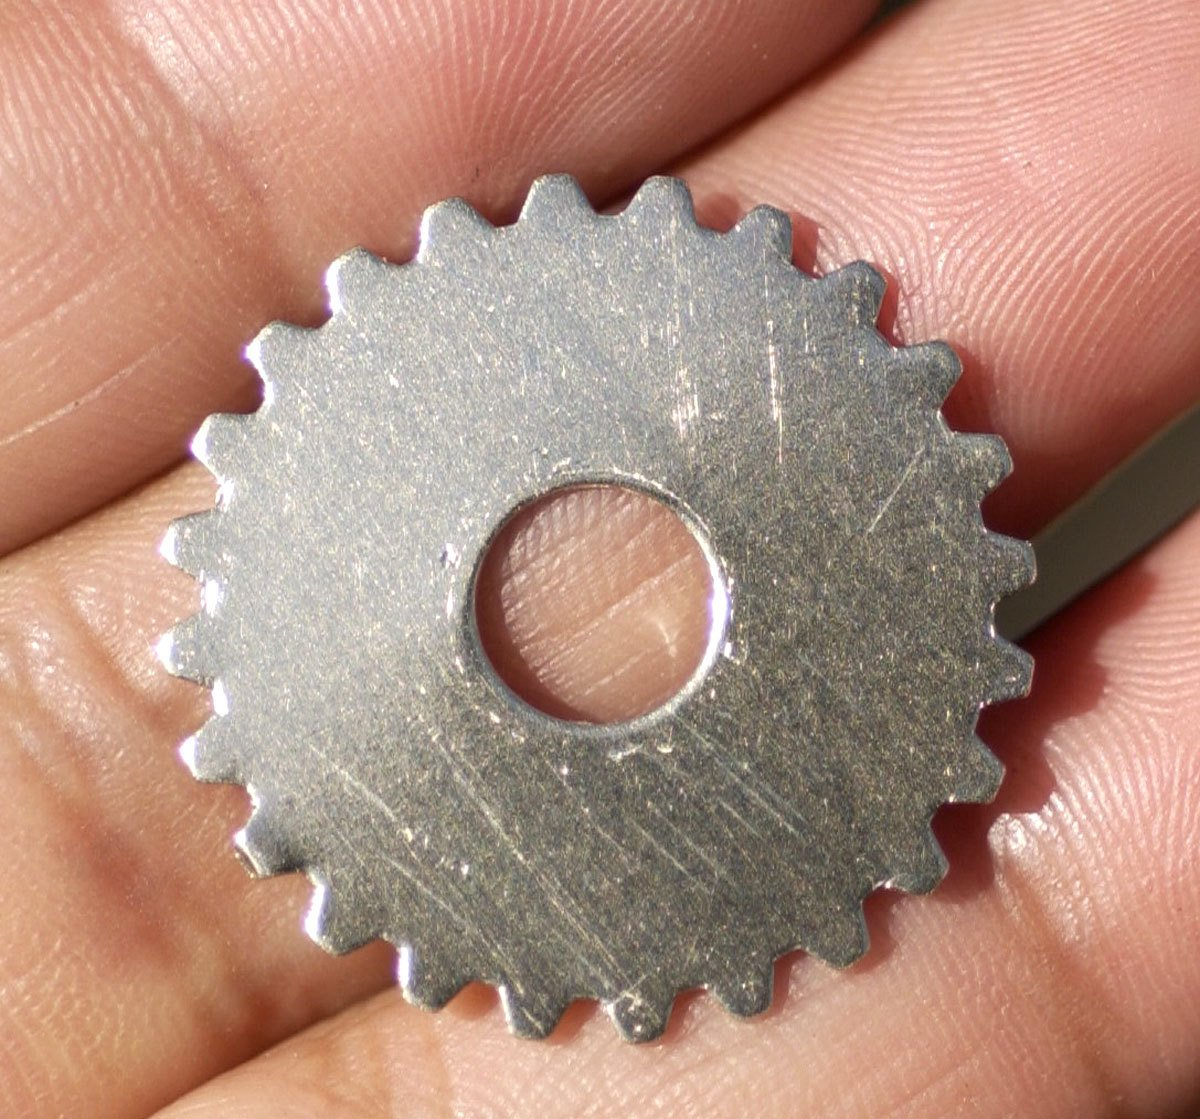 Nickel Silver 25mm Gear Cog Blanks with 6.8mm 24g Cutout for Stamping Texturing Polished Blanks Jewelry Making